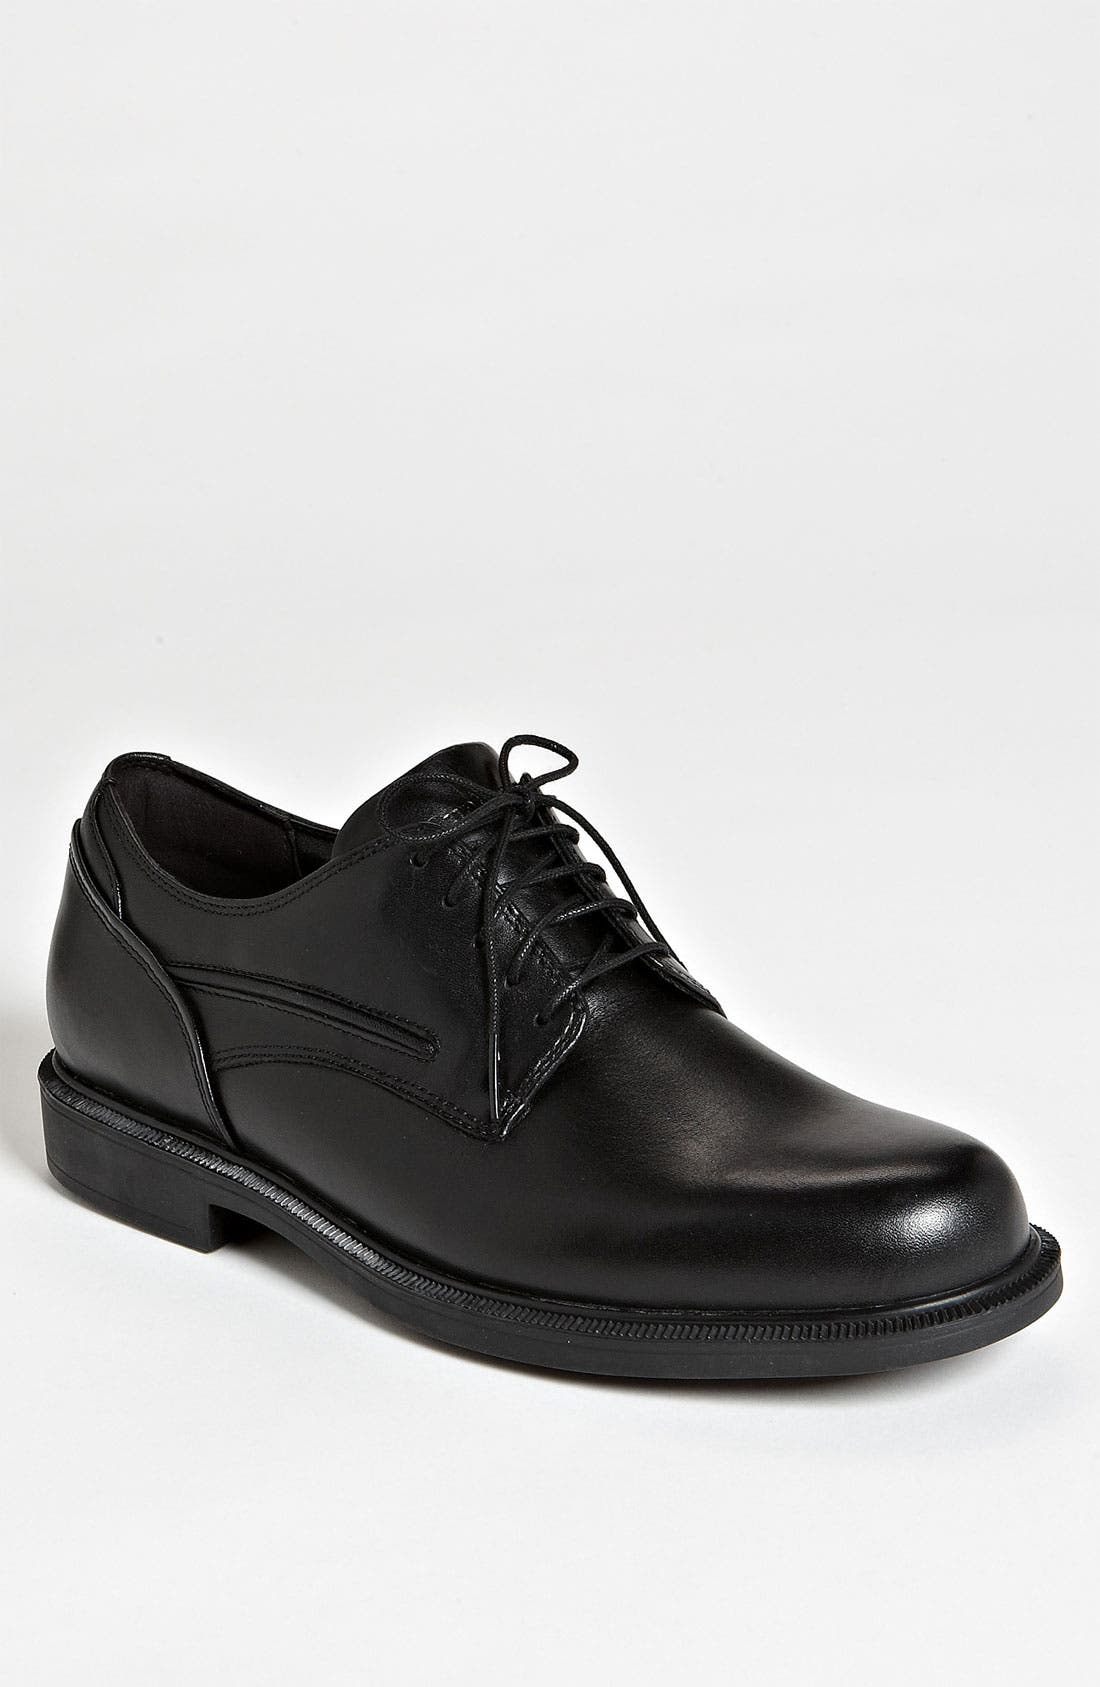 burlington flats men Men's oxfords : free shipping on orders over $45 at overstock - your online men's oxfords store get 5% in rewards with club o.